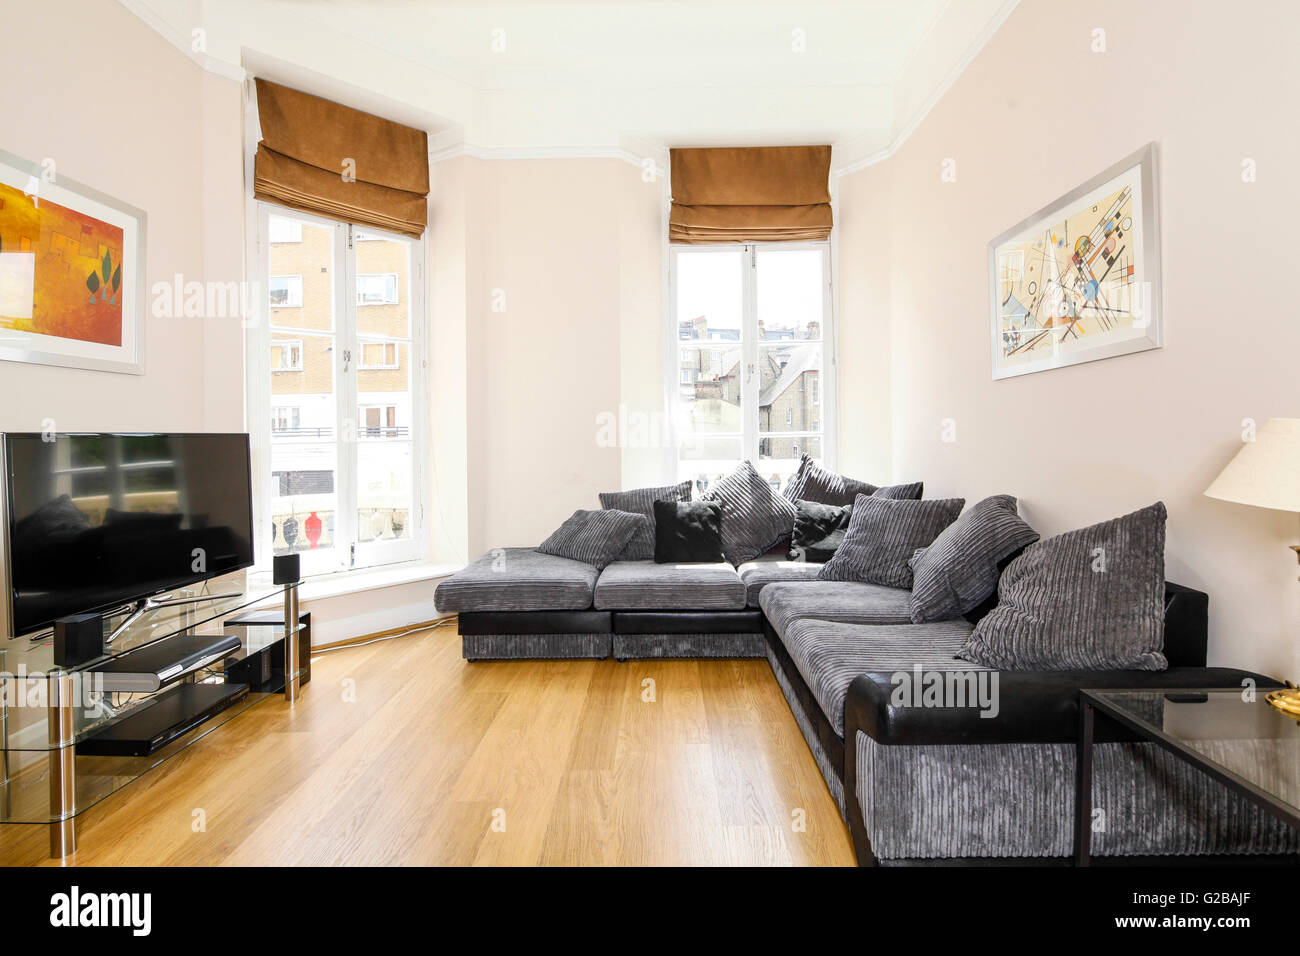 park house harrington road trendige moderne wohnzimmer mit grauen sofas und flachbild tv. Black Bedroom Furniture Sets. Home Design Ideas